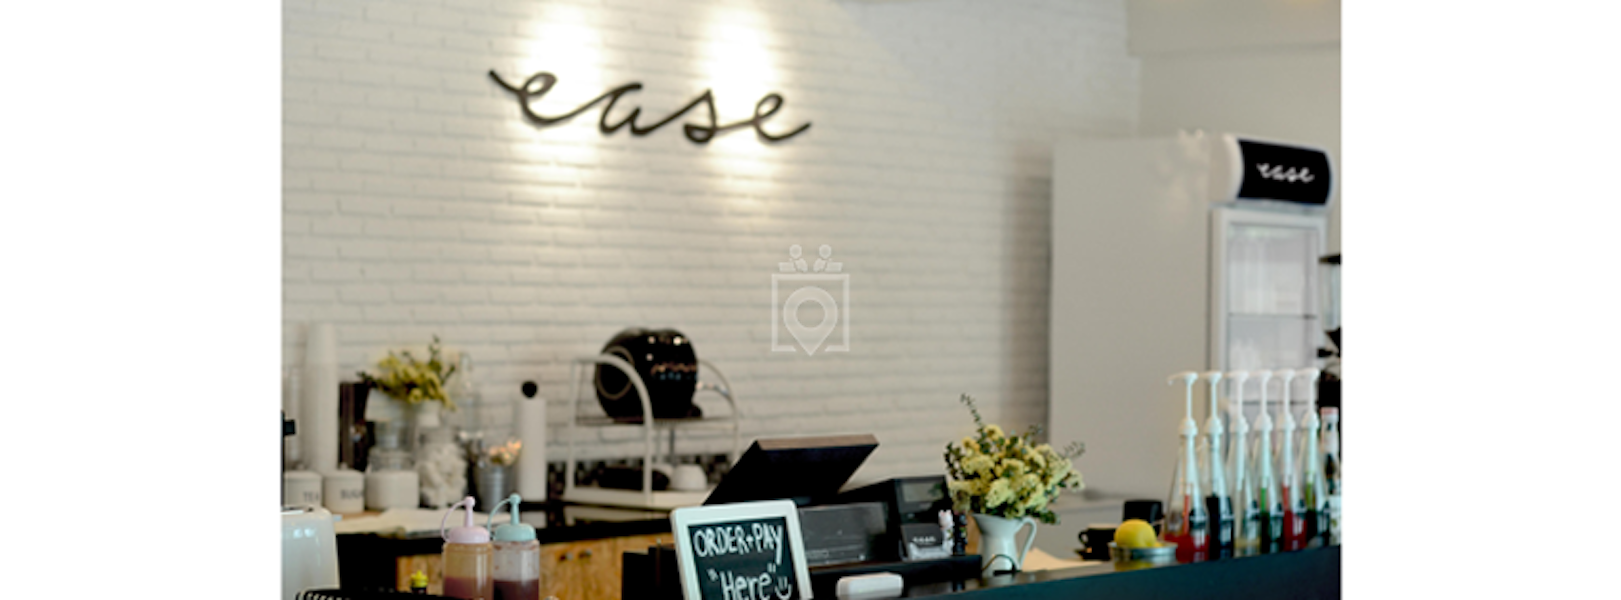 Ease Cafe & CoWorking Space, Bangkok - Read Reviews & Book Online